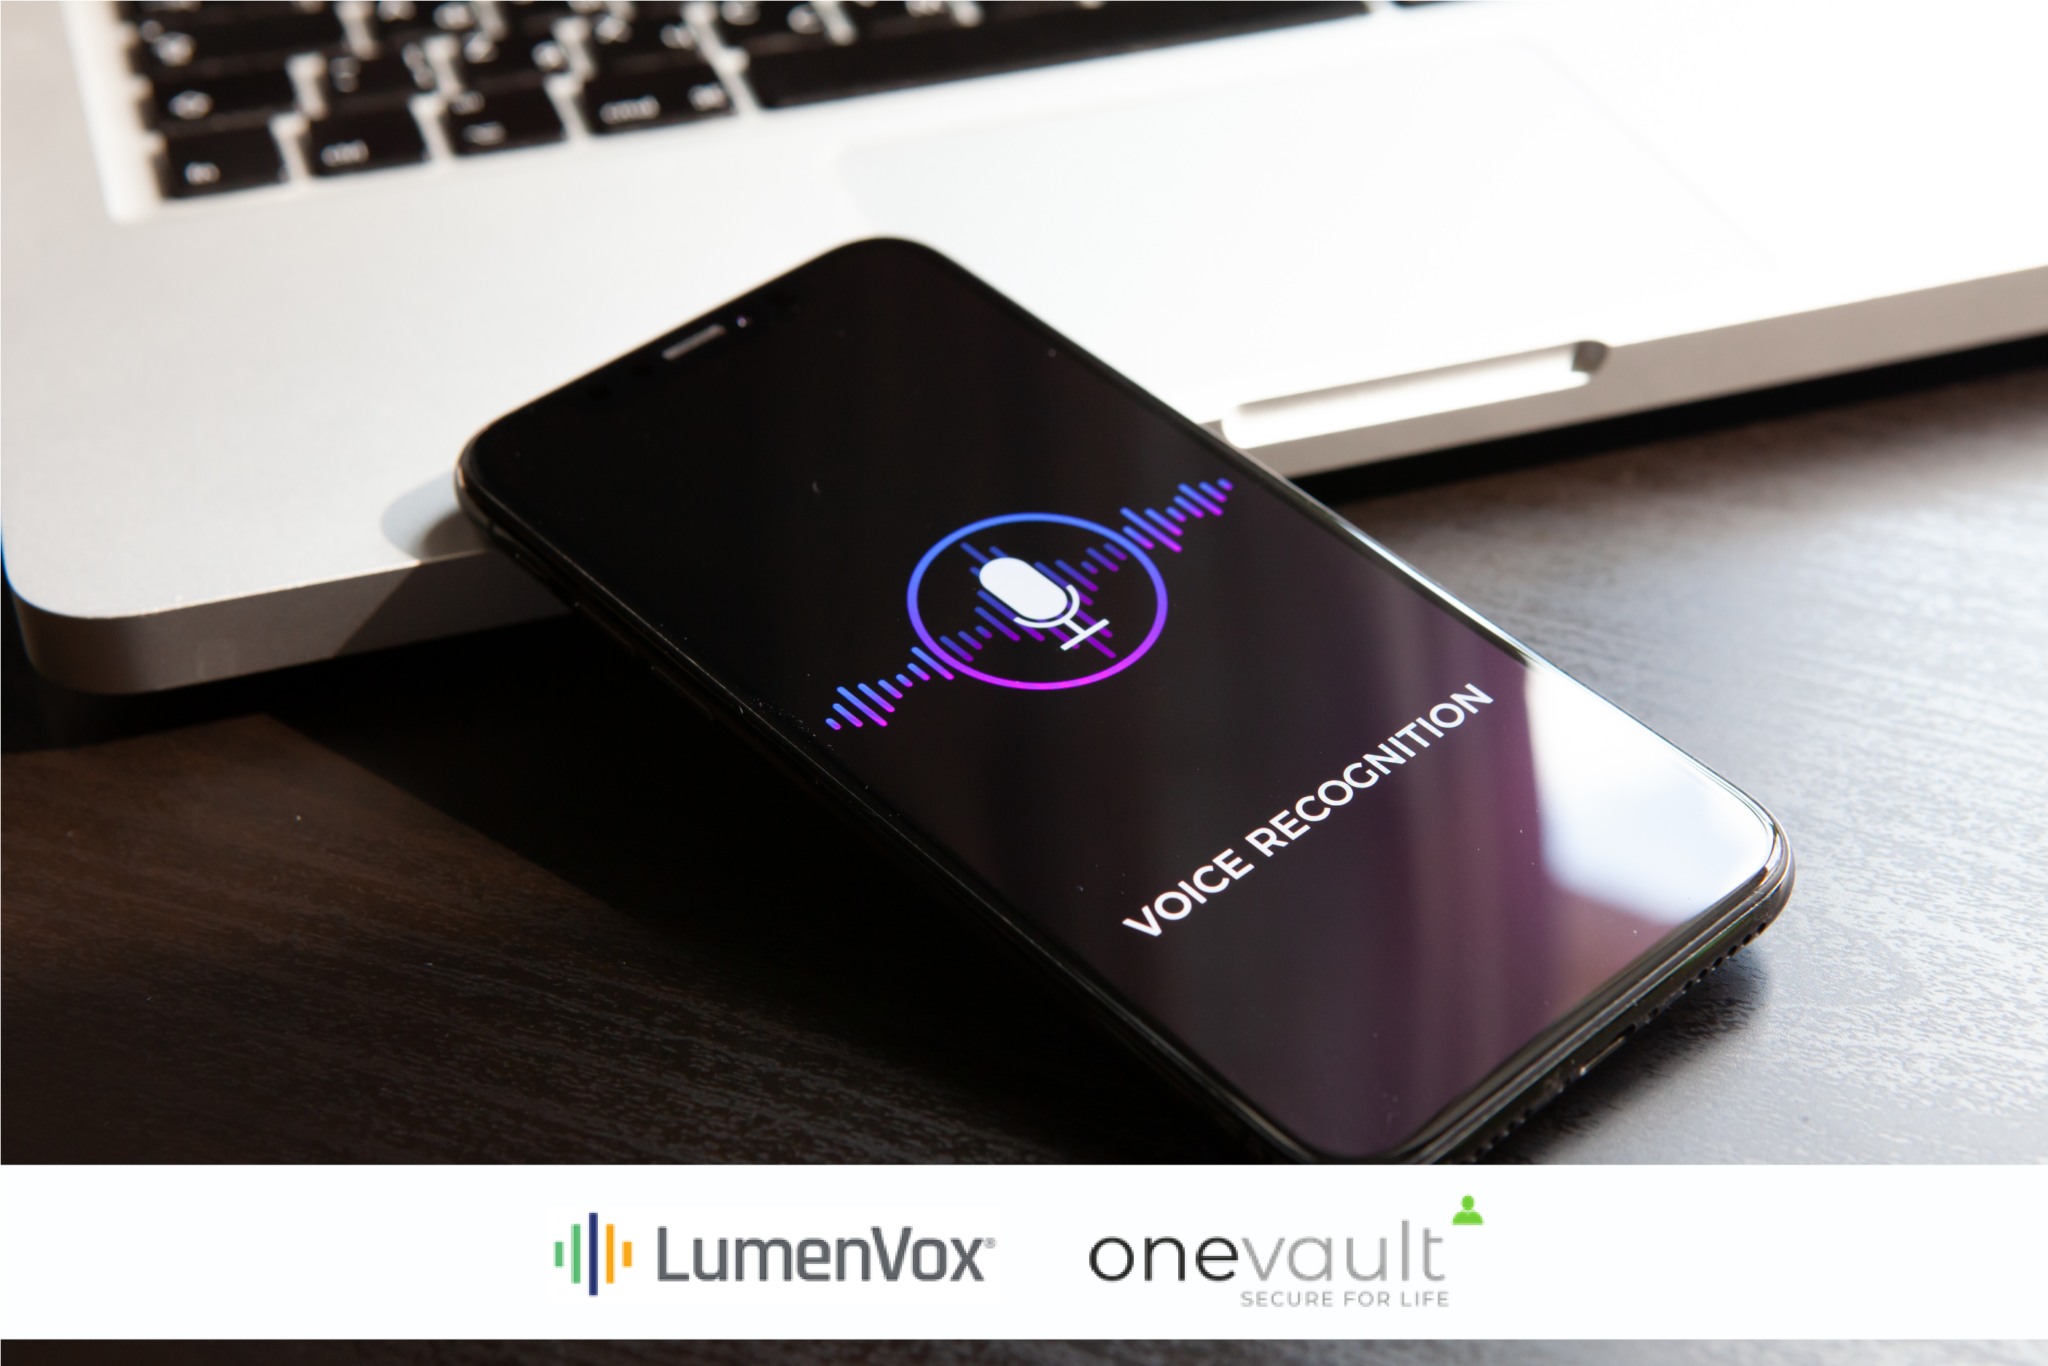 LumenVox Partners with OneVault to Deliver Biometrics Solutions to African Market